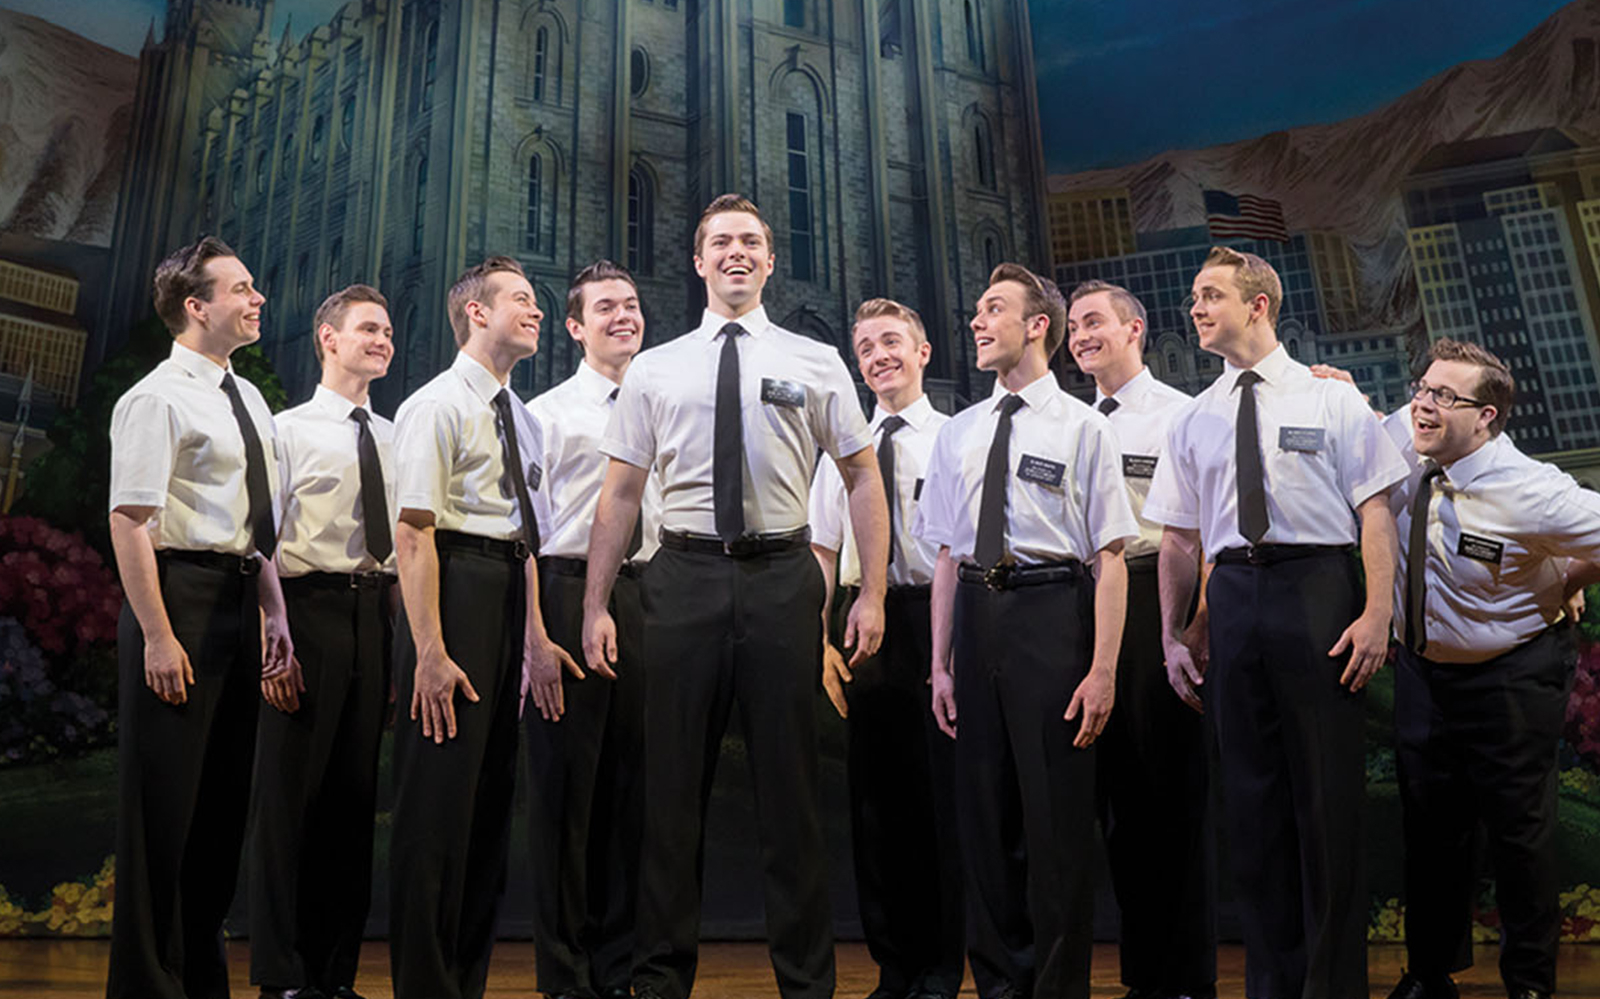 6d391456 f6ae 406d 8223 6f6674a61c91 2843 london book of mormon 04